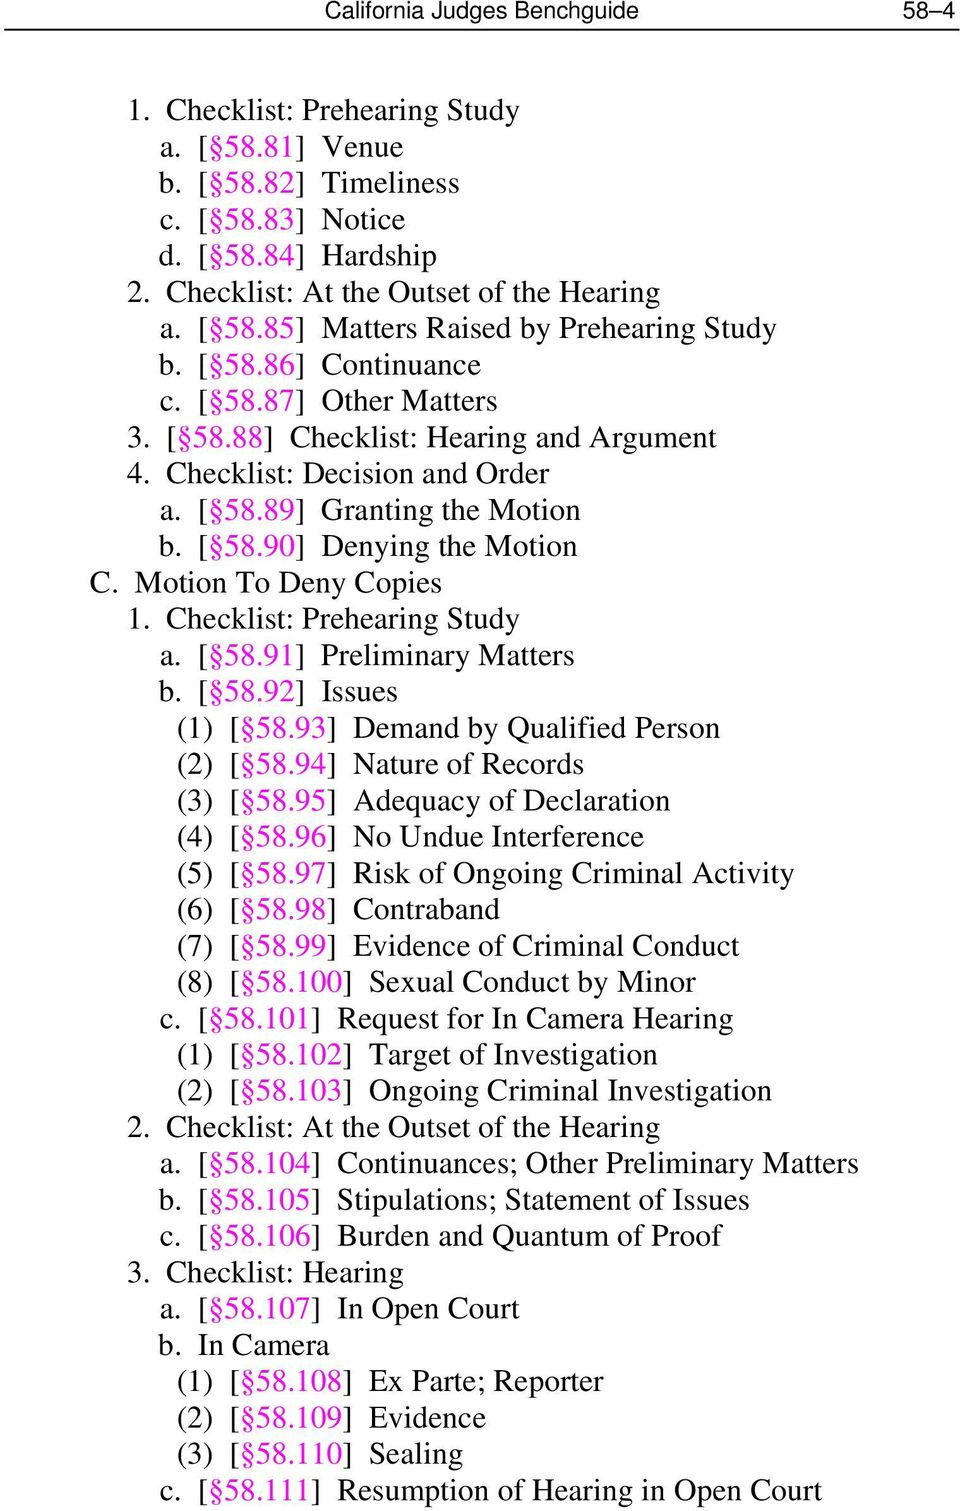 Motion To Deny Copies 1. Checklist: Prehearing Study a. [ 58.91] Preliminary Matters b. [ 58.92] Issues (1) [ 58.93] Demand by Qualified Person (2) [ 58.94] Nature of Records (3) [ 58.